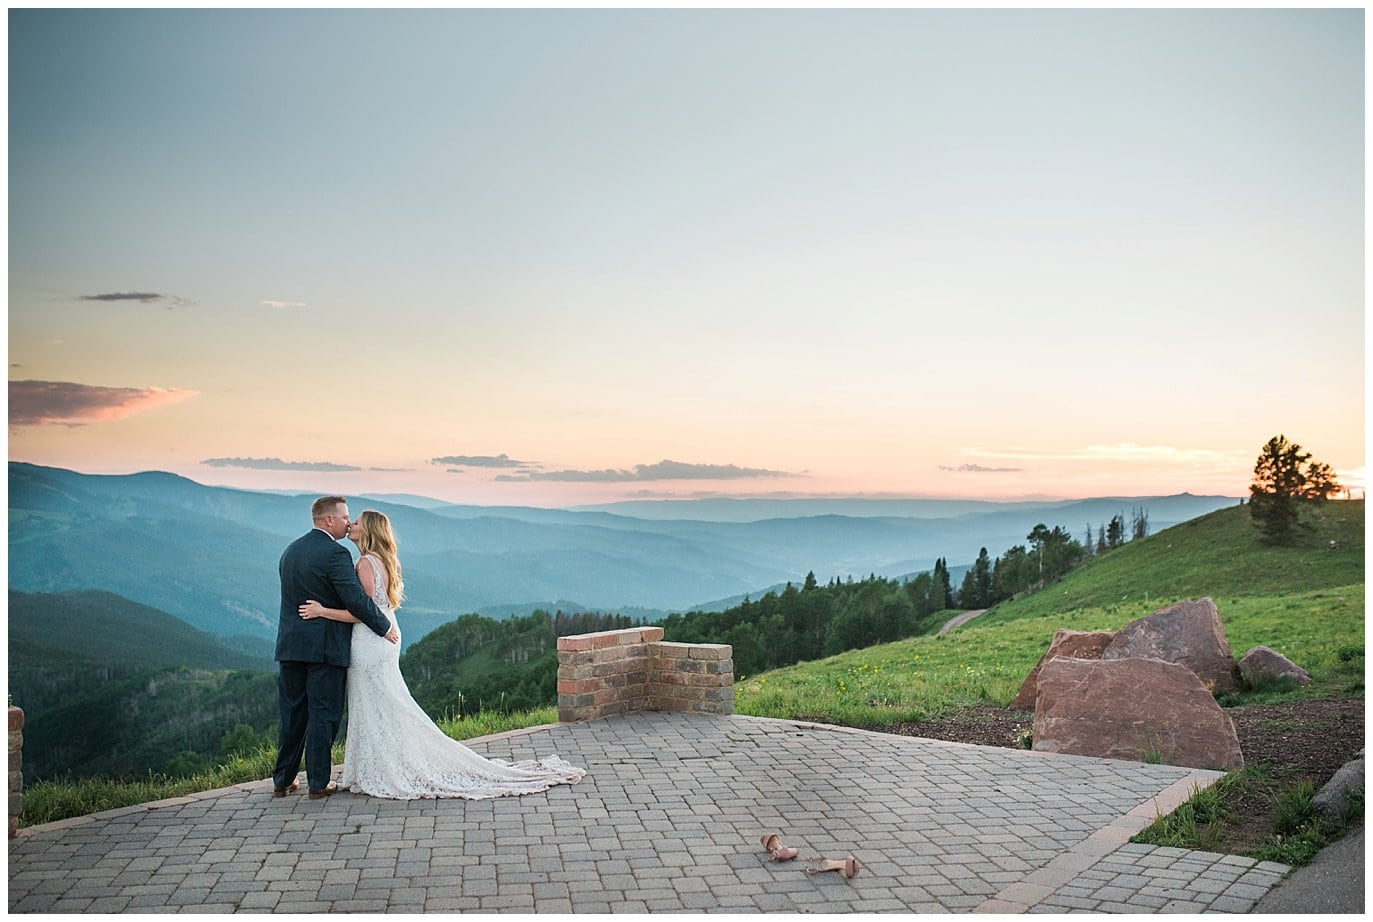 mountaintop summer wedding photo in Vail by Vail wedding photographer Jennie Crate